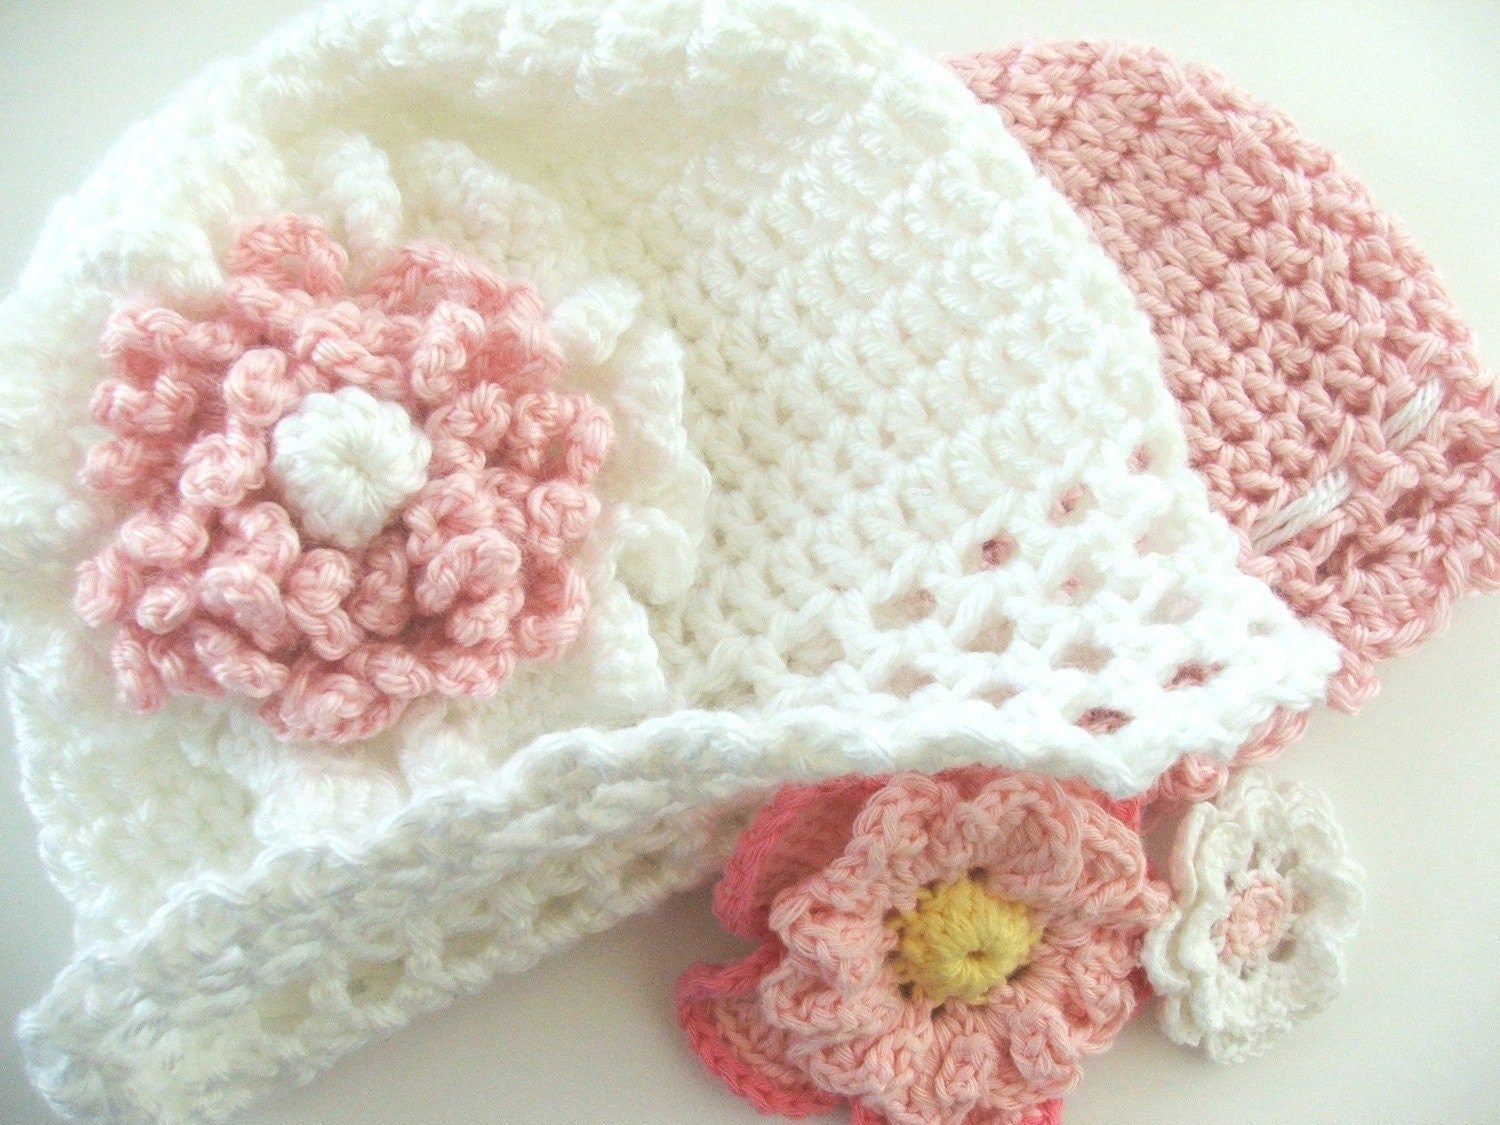 Crochet Beanie Hat Pattern For Babies : Simple Baby Hat Crochet PATTERN Fast and Easy Instant